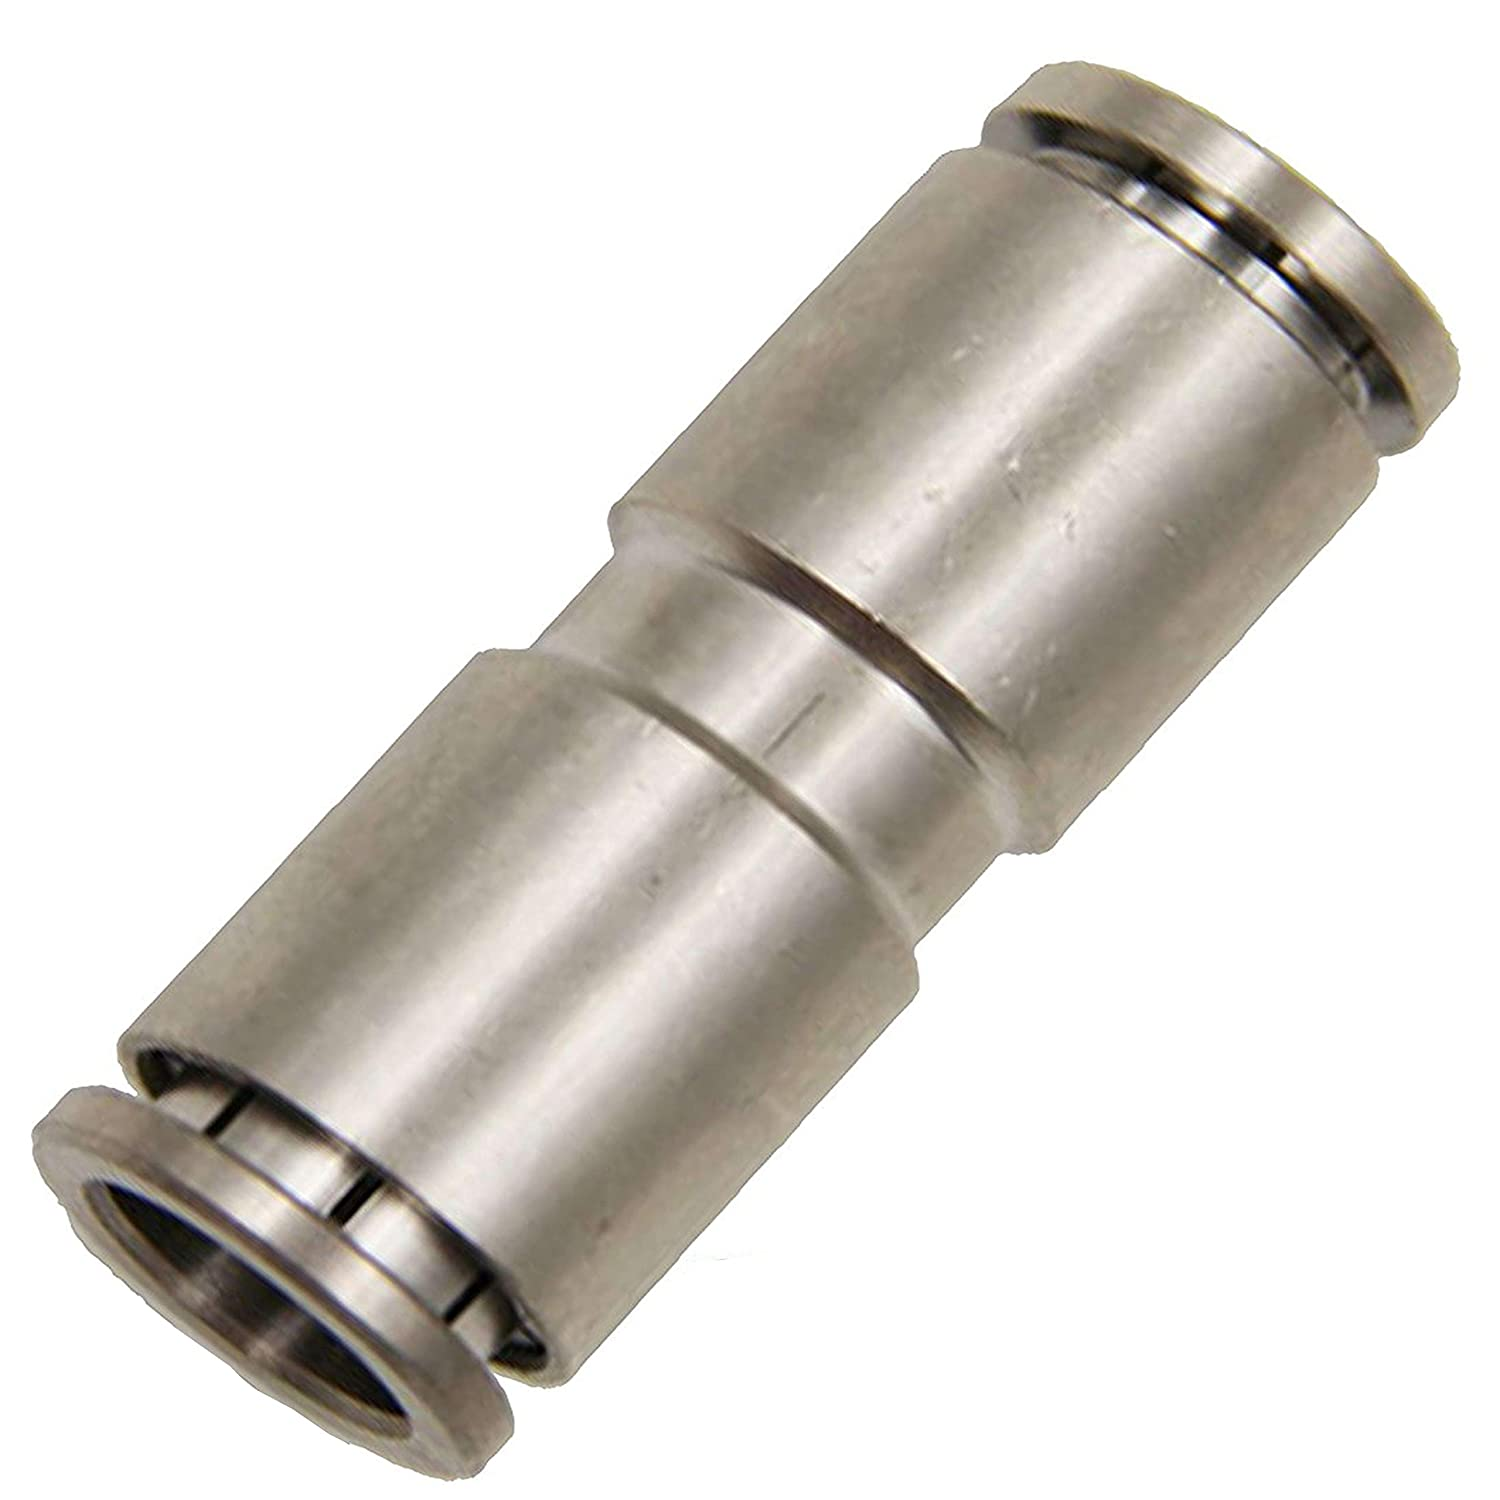 Utah Pneumatic Pack of 2 Nickel-Plated Brass Push to Connect Fittings 1/4'Od Straight Connector Push Fit Fittings Tube Fittings Pneumatic Fittings Air Line Fittings Tube (1/4' Straight Brass)